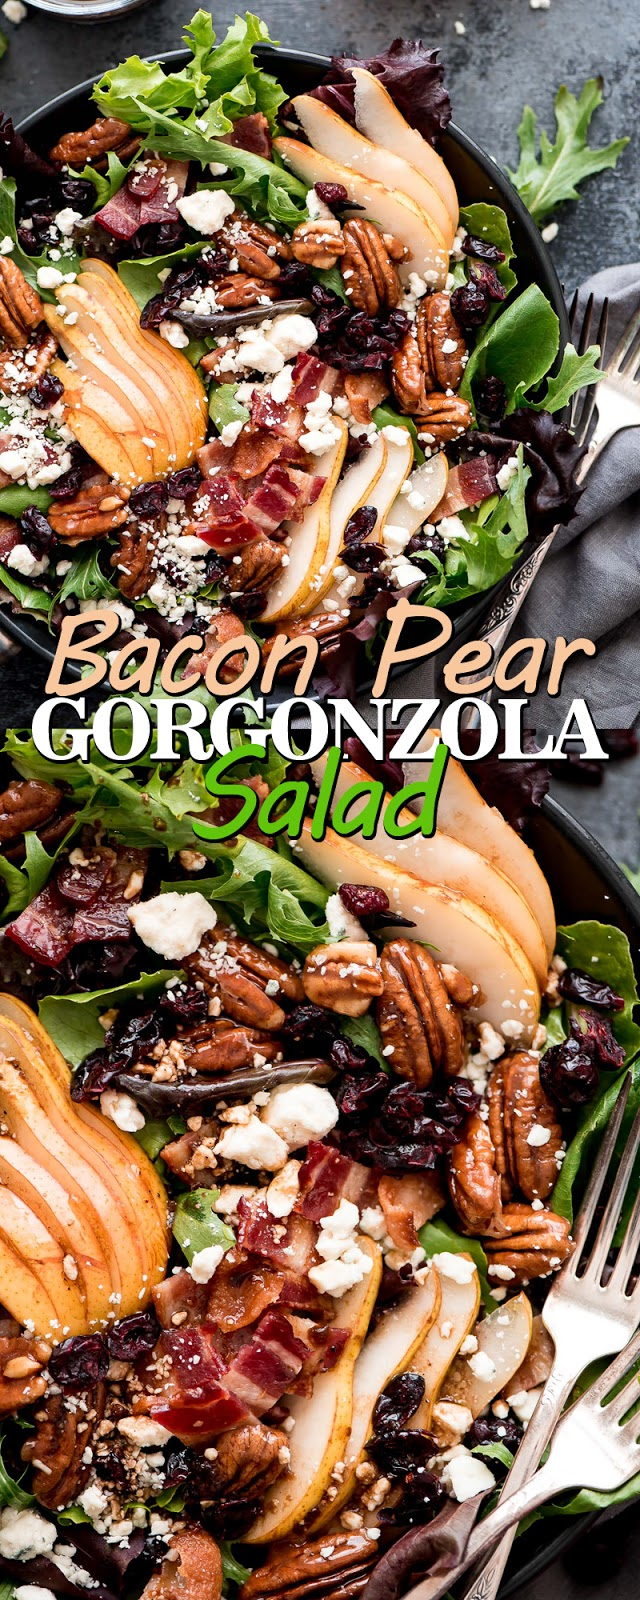 BACON PEAR GORGONZOLA SALAD